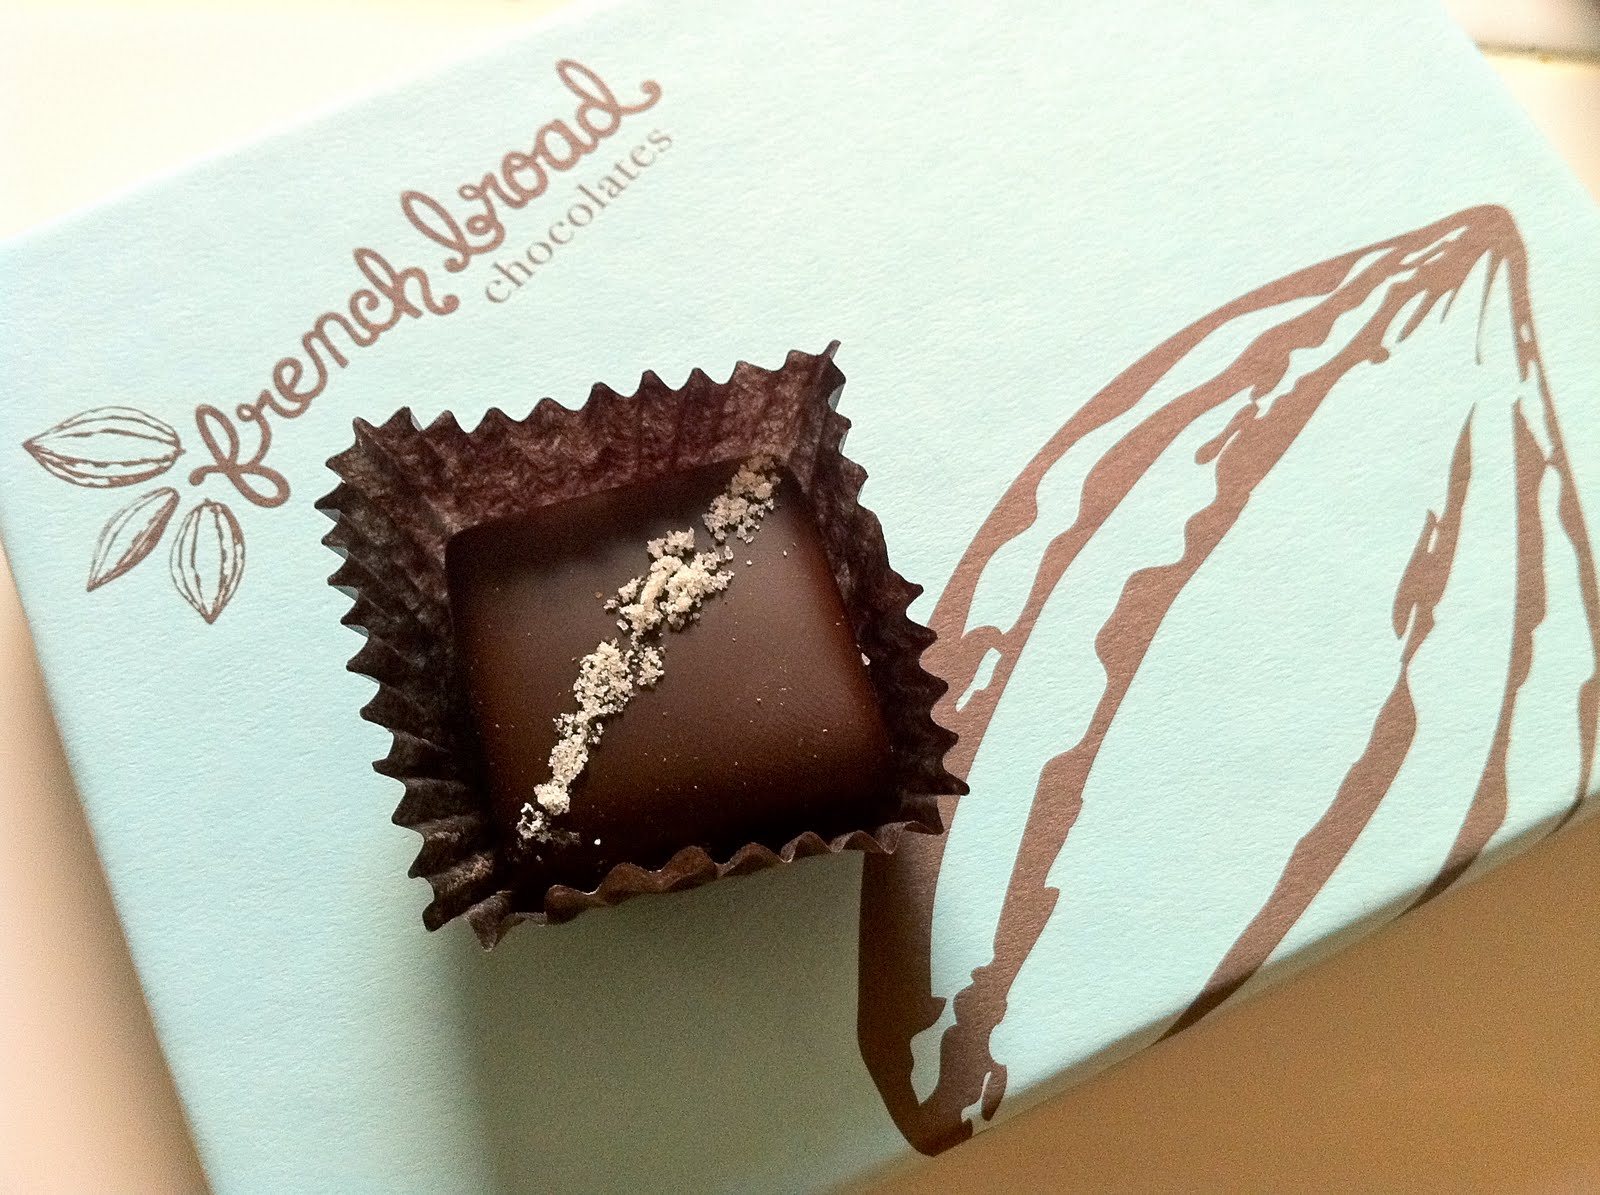 French Broad Chocolate Lounge, Asheville - Good Taste is the Worst ...